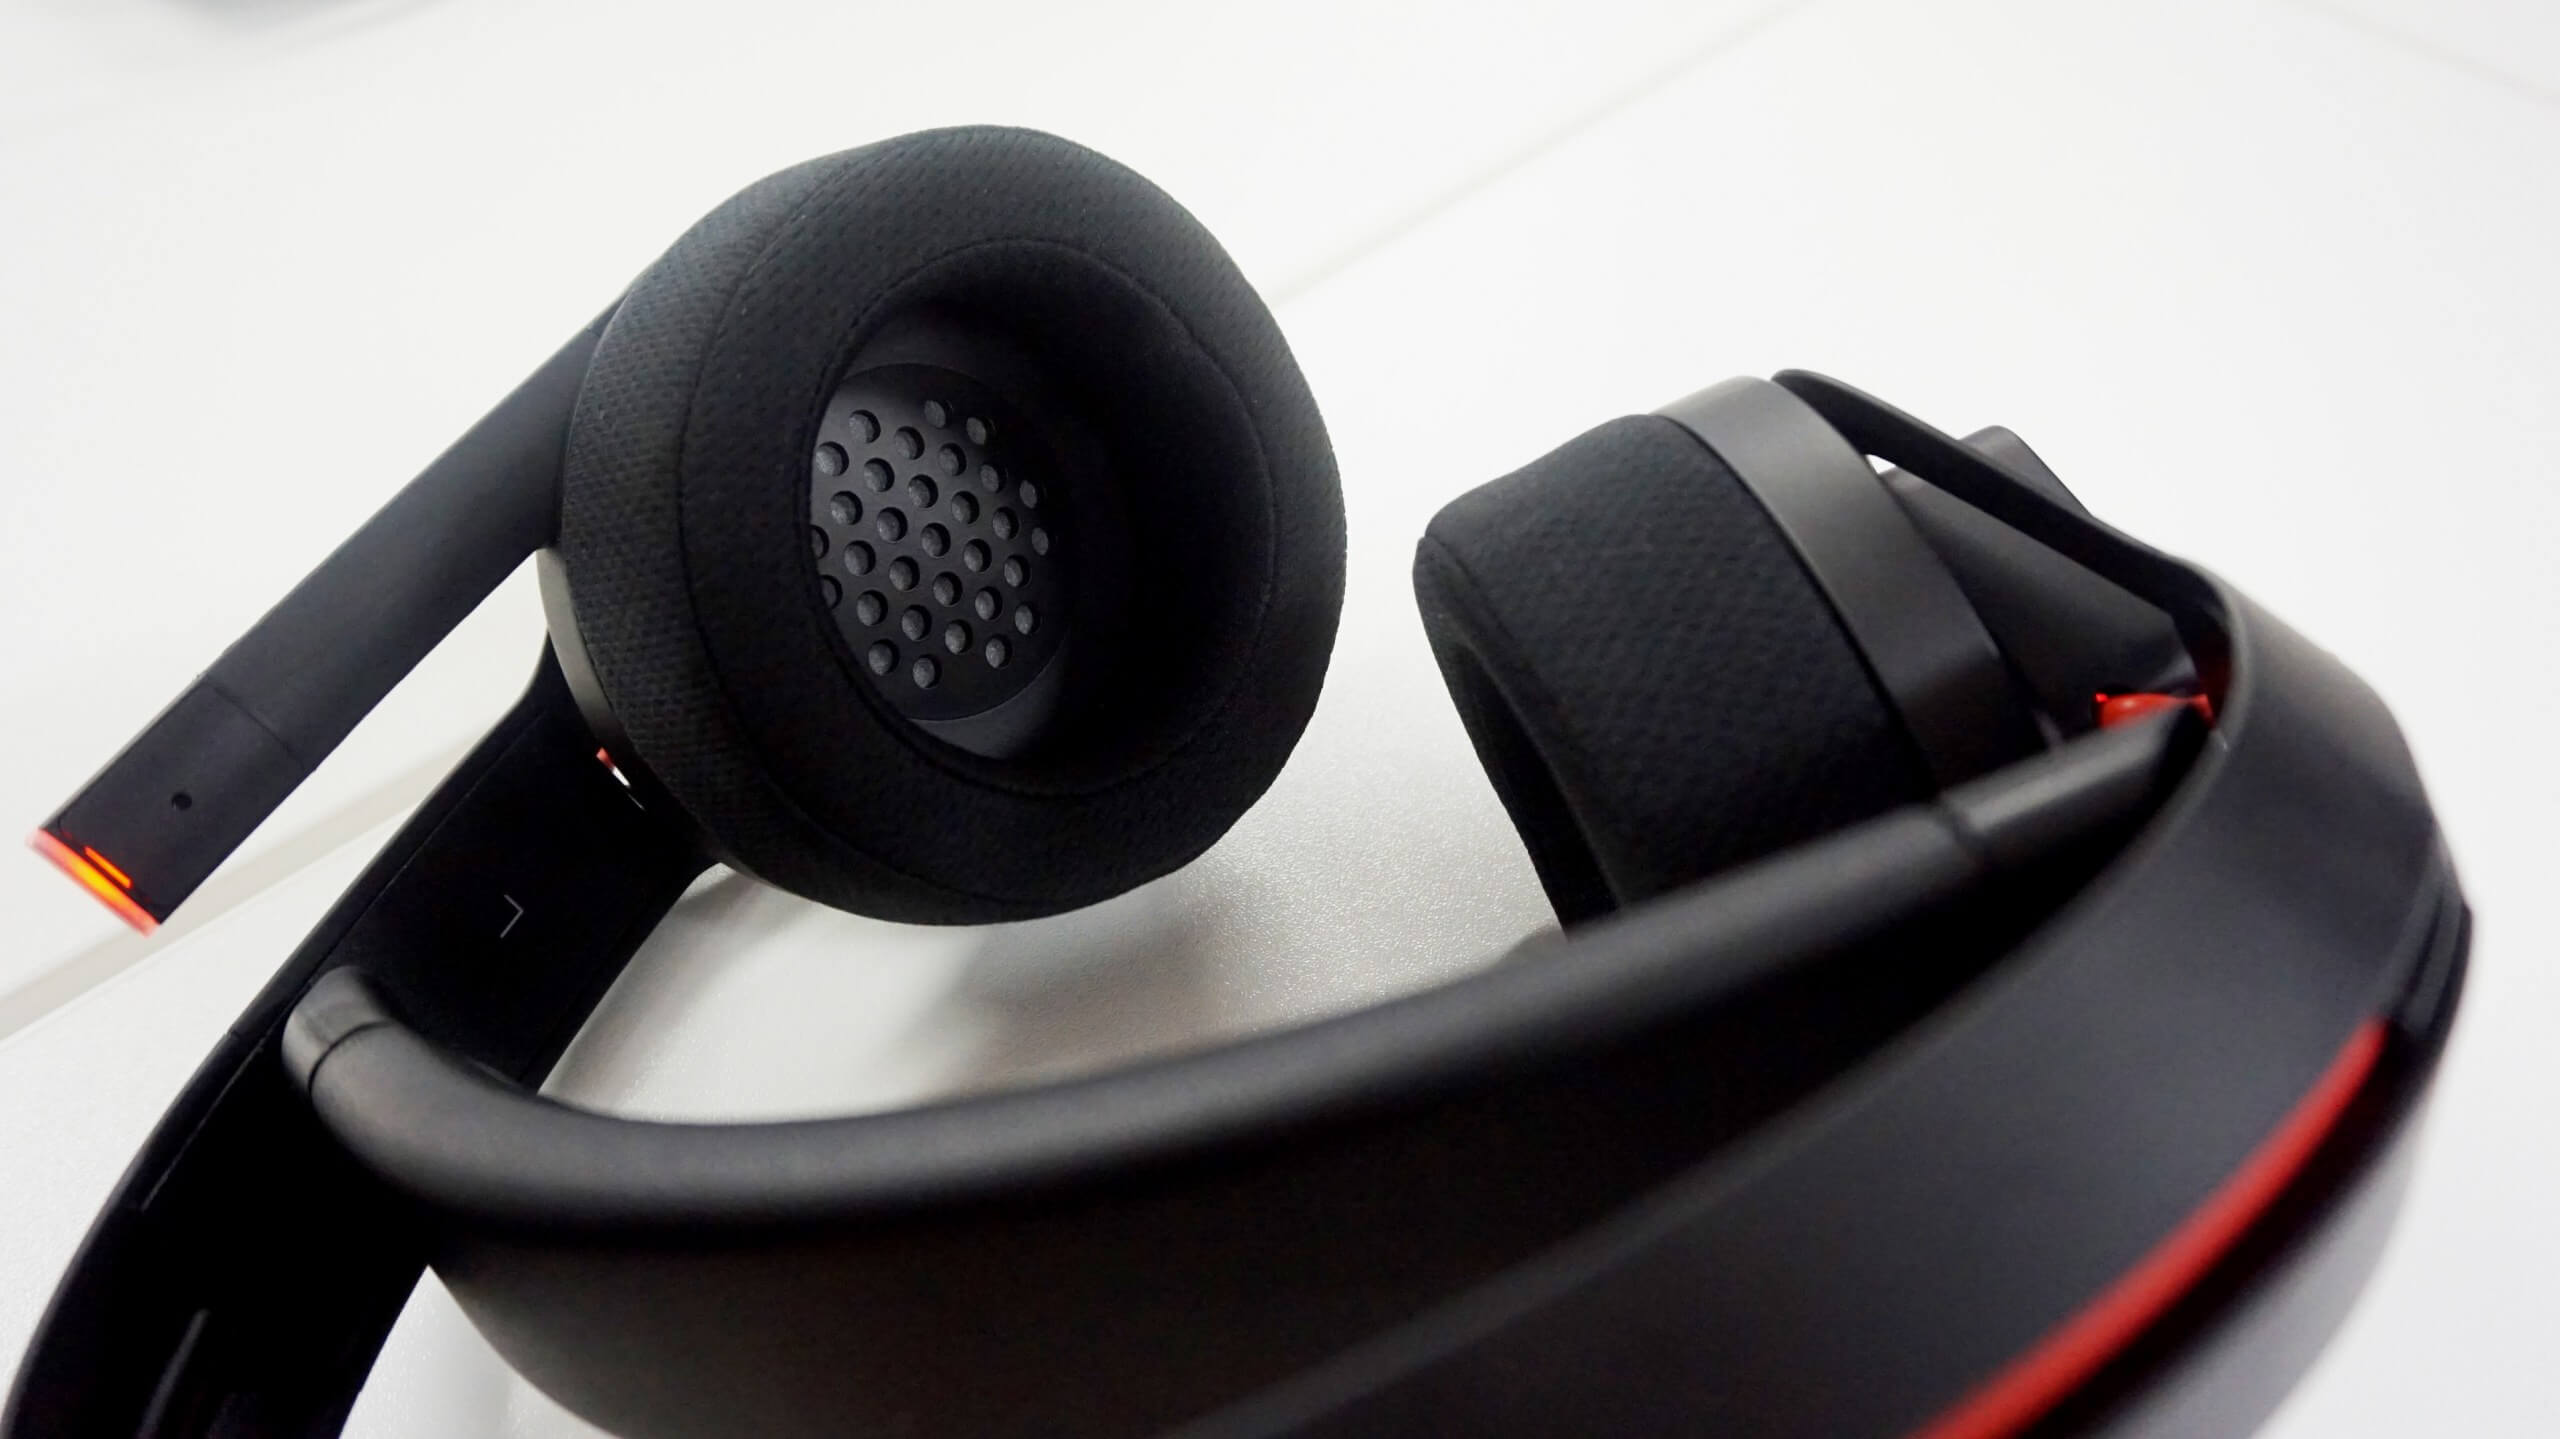 a325959c629 HP's Omen Mindframe gaming headset keeps your ears cool - TechSpot